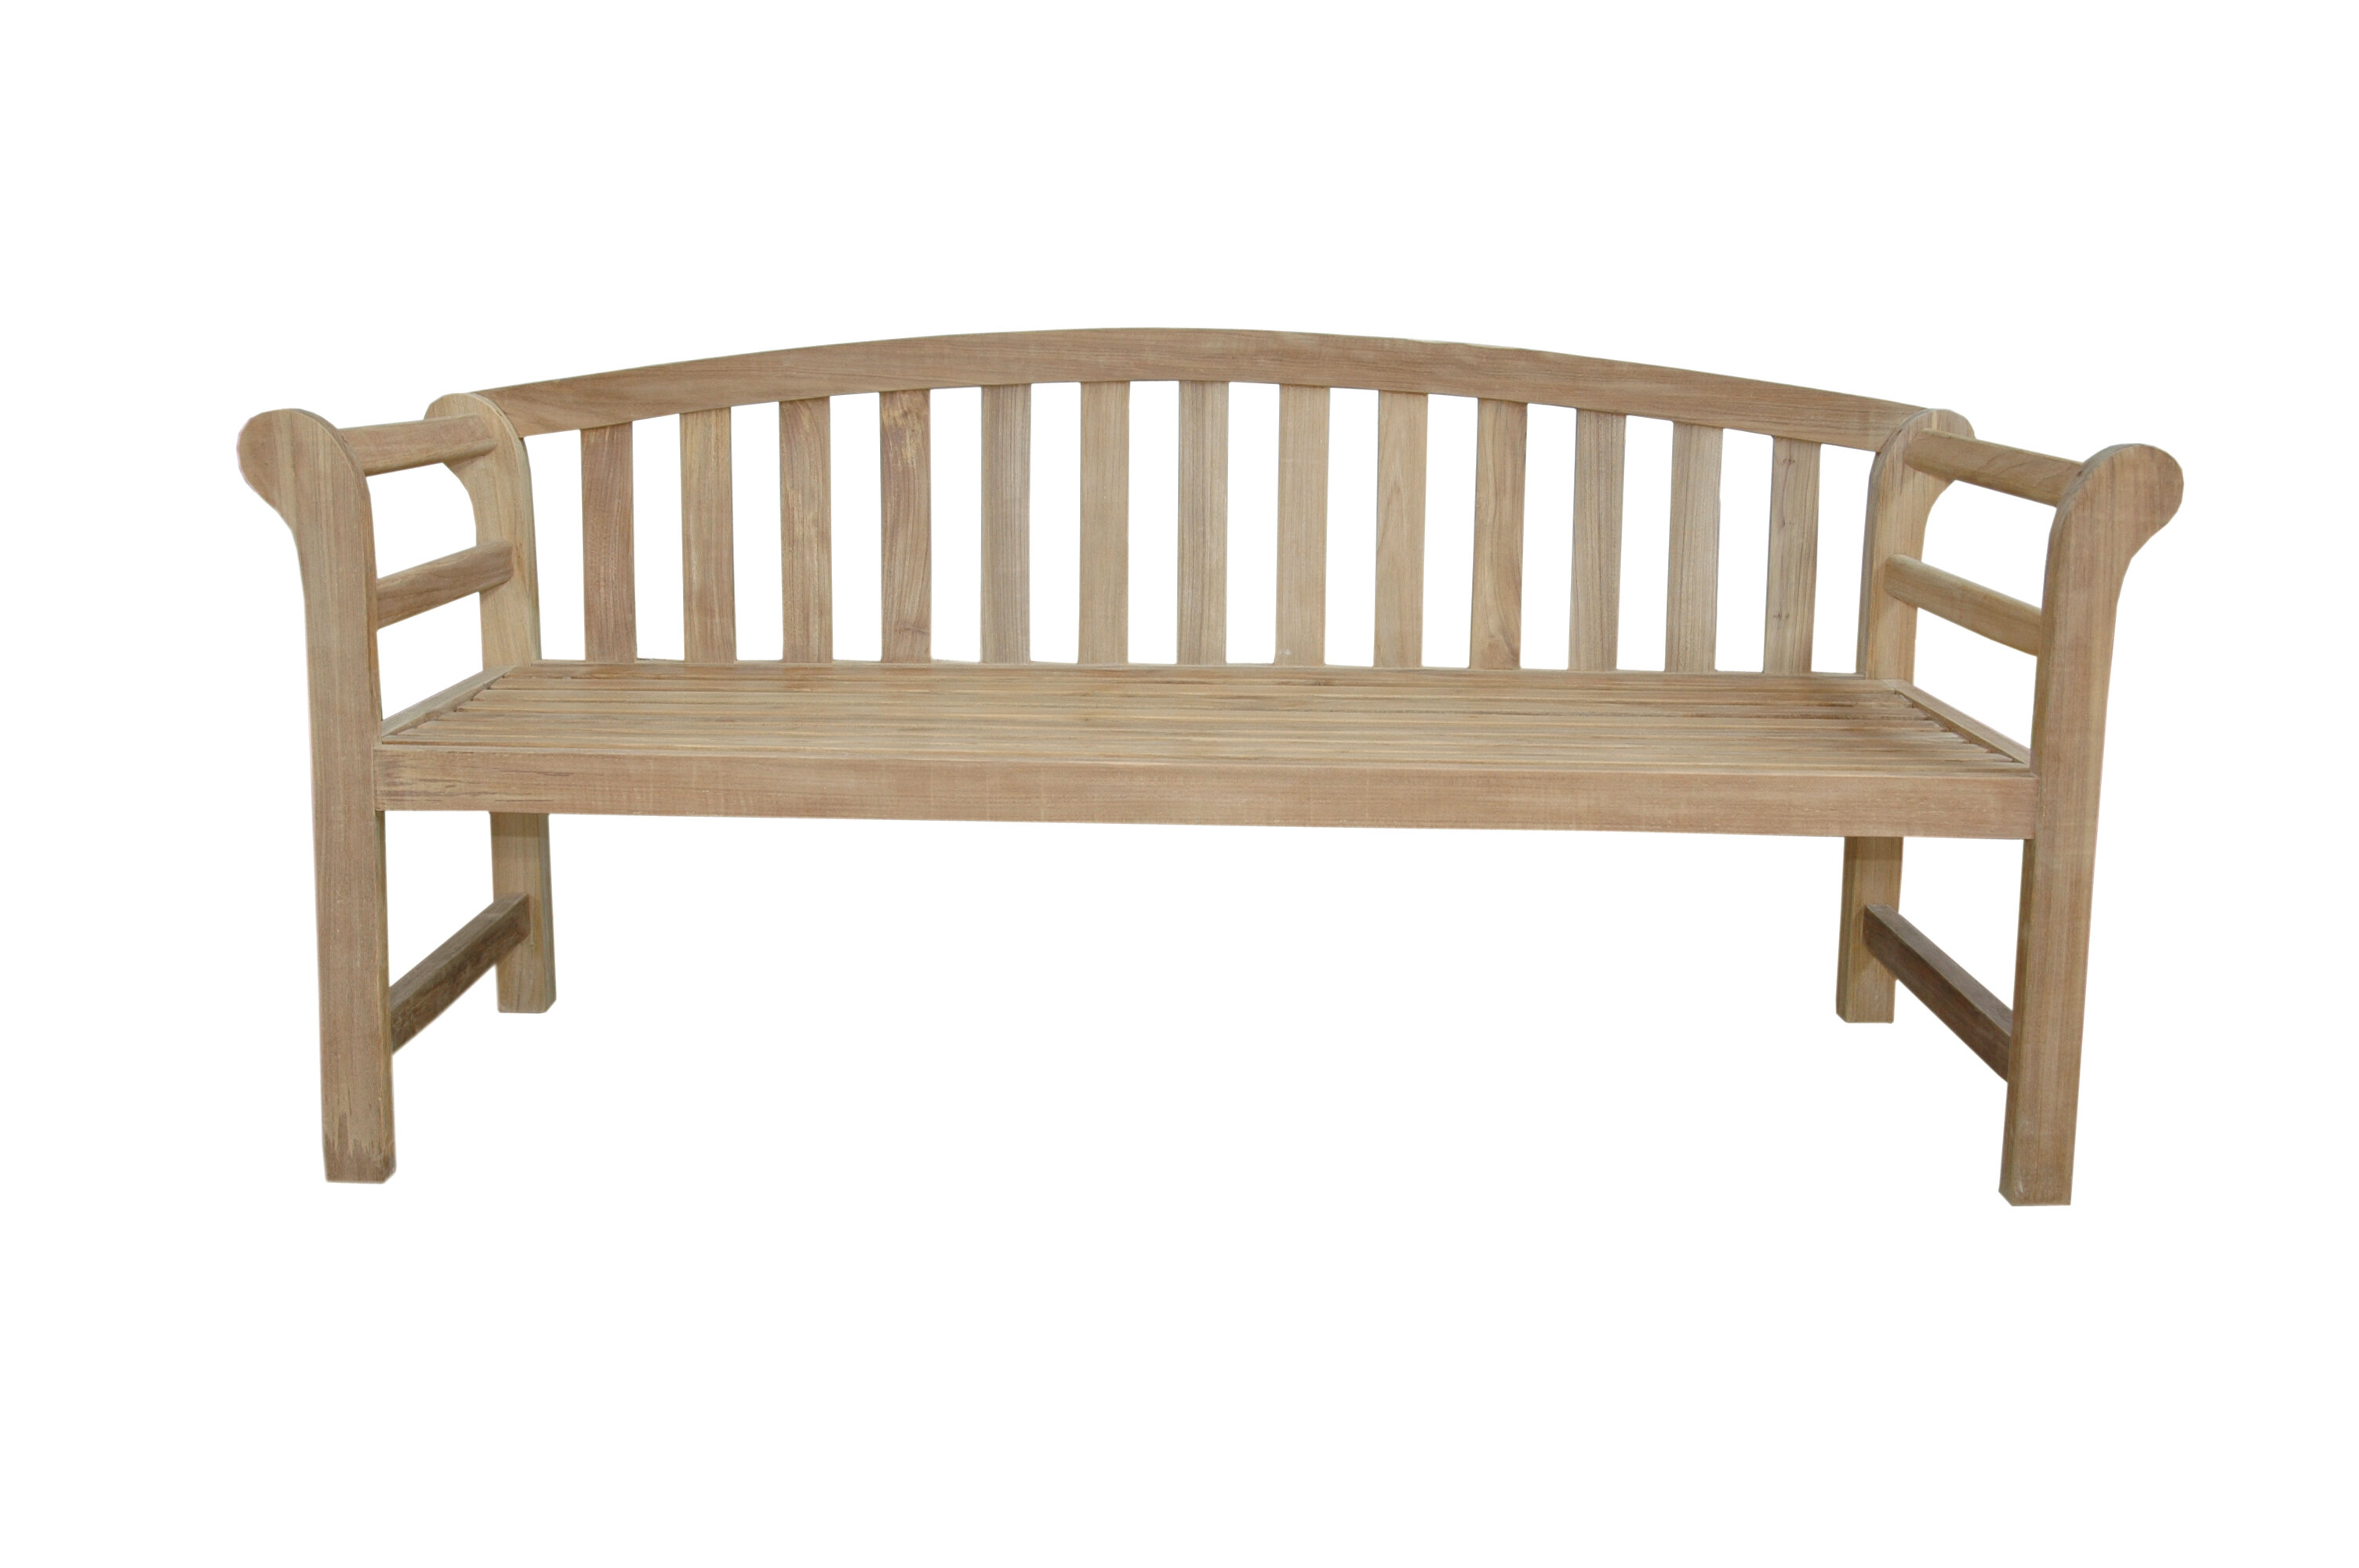 Admirable Brisbane Teak Garden Bench Caraccident5 Cool Chair Designs And Ideas Caraccident5Info